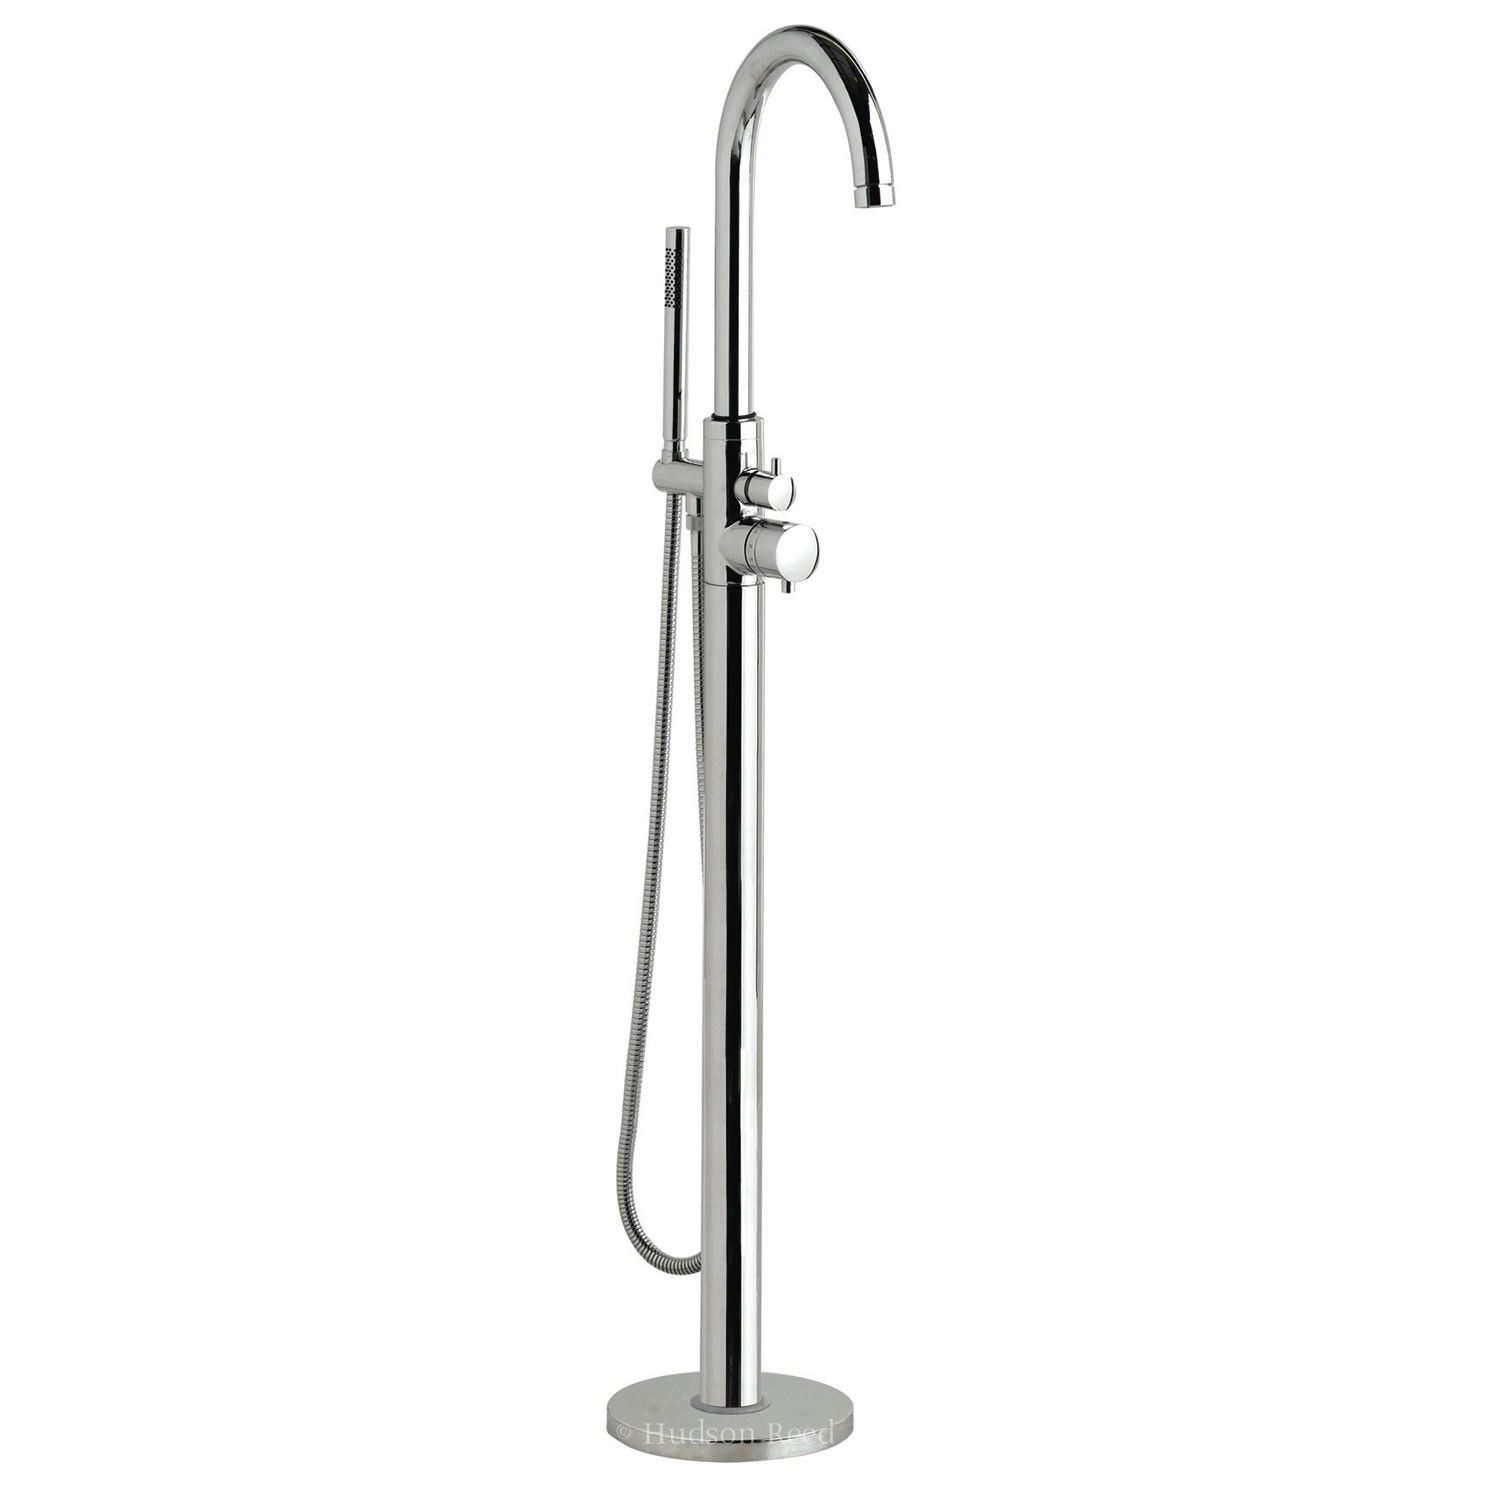 mount parts picture design tub shower spout expert unique floors tubs full and size floor installations of for faucet door diverter sale